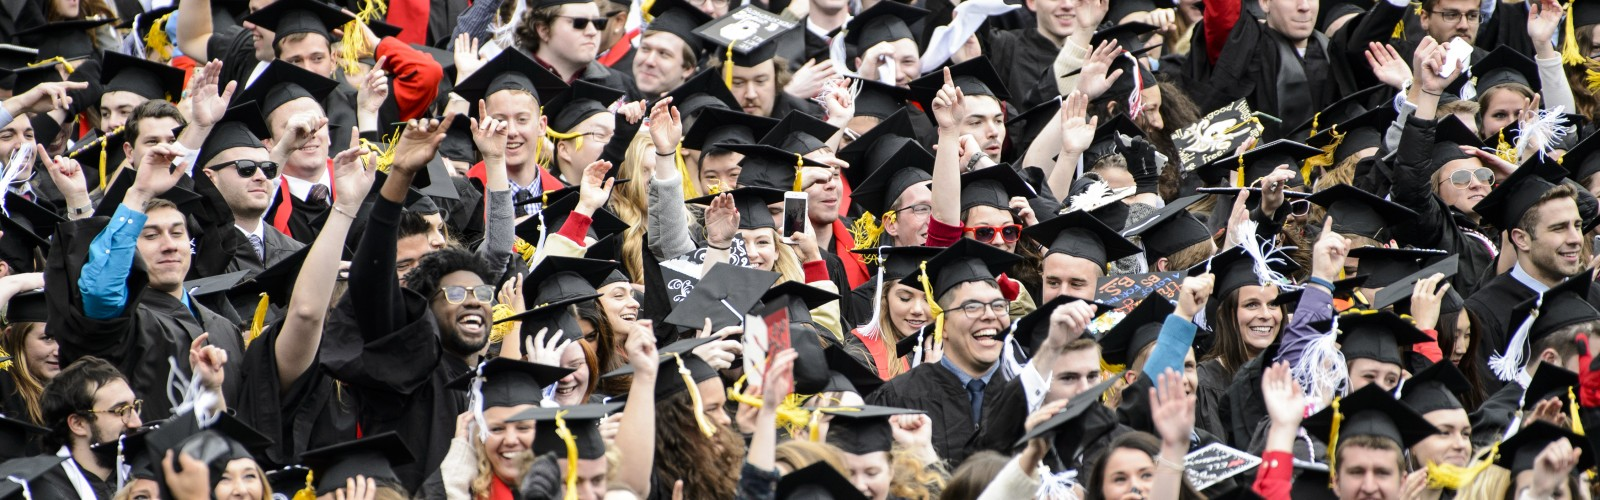 "Graduates dance as the song ""Jump Around"" plays during UW-Madison's spring commencement ceremony at Camp Randall Stadium at the University of Wisconsin-Madison on May 14, 2016. The outdoor graduation was attended by approximately 5,600 bachelor's and master's degree candidates and their guests. (Photo by Bryce Richter / UW-Madison)"